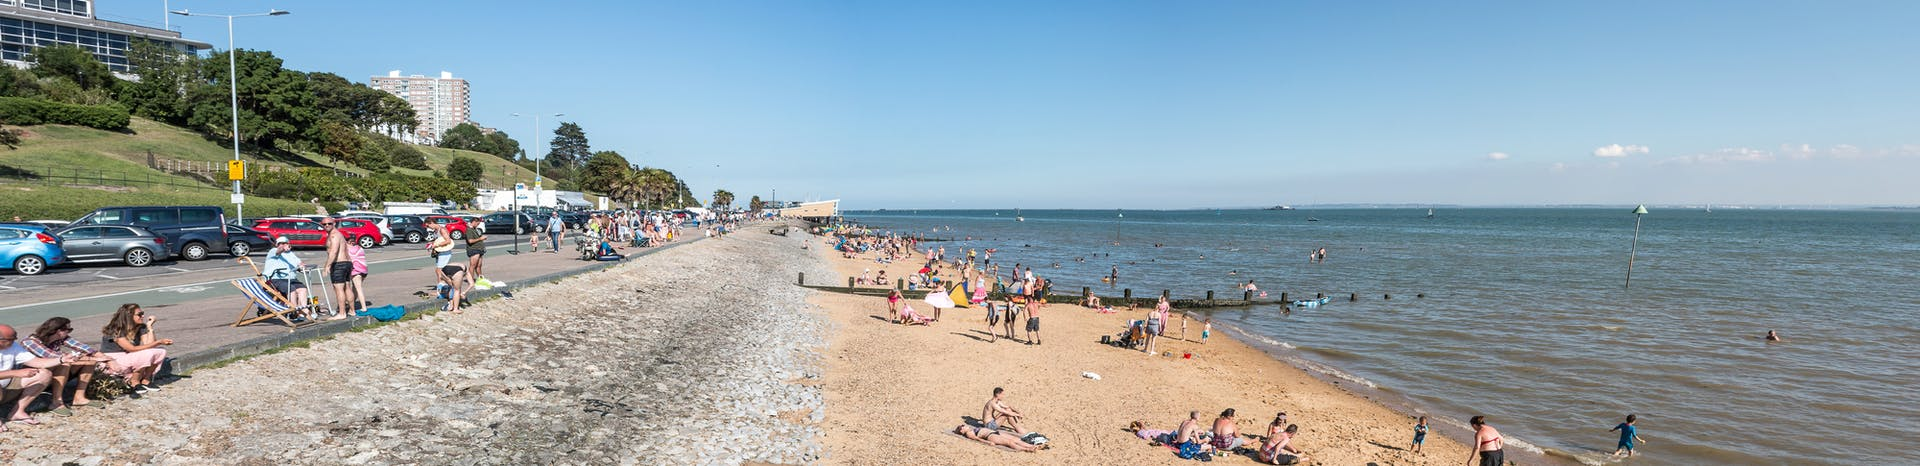 Picture of Southend-on-Sea